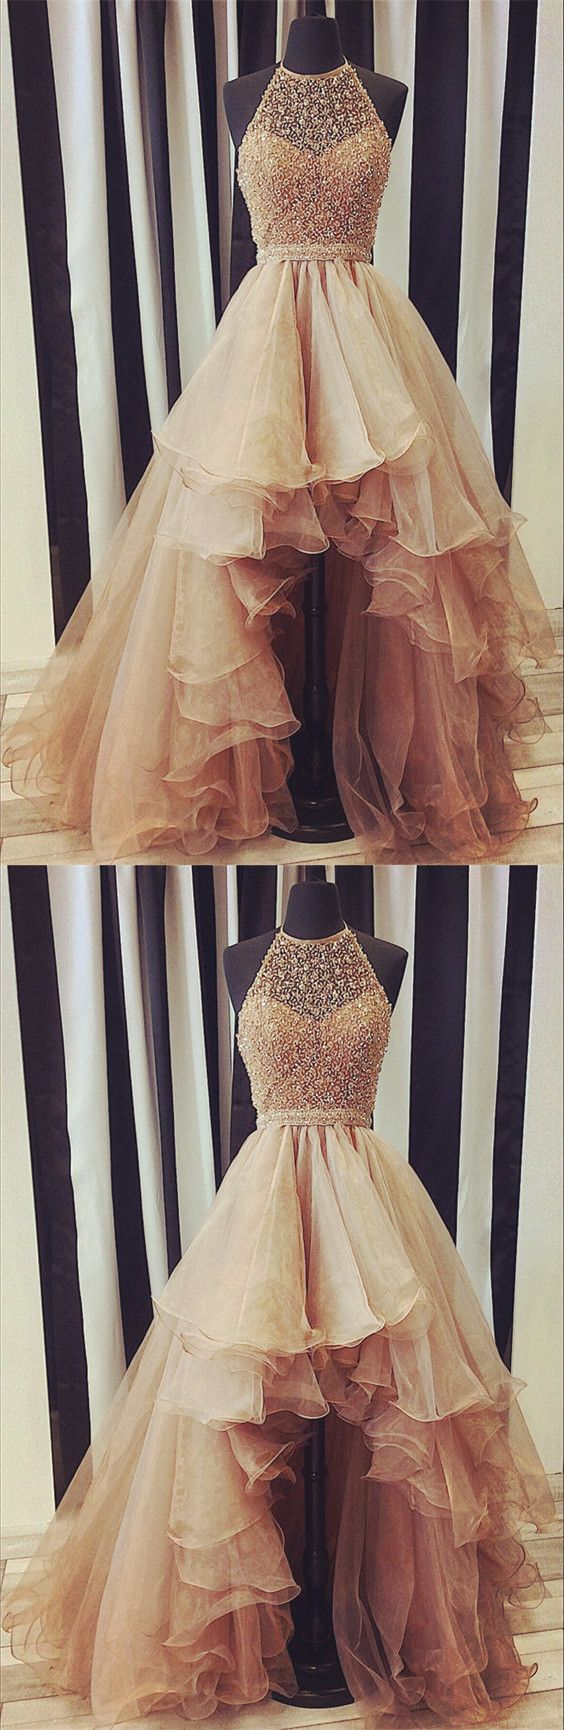 Sparkly sequin beaded halter organza layered prom dresses front